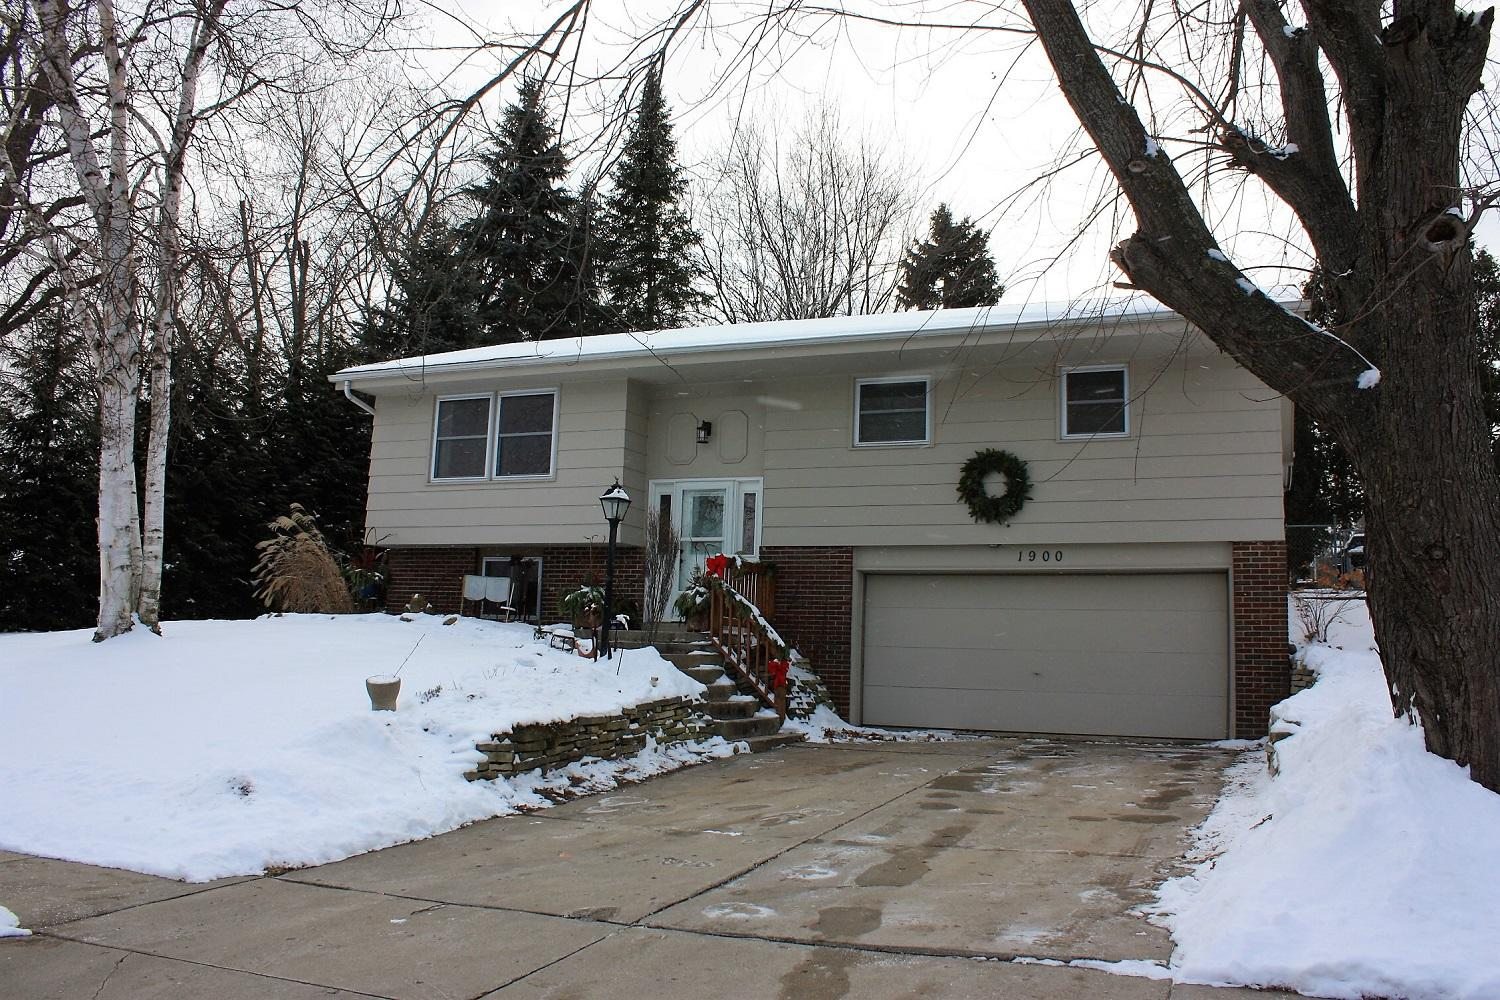 1900 Woodlawn Ave, West Bend, Wisconsin 53090, 3 Bedrooms Bedrooms, ,1 BathroomBathrooms,Single-Family,For Sale,Woodlawn Ave,1620360